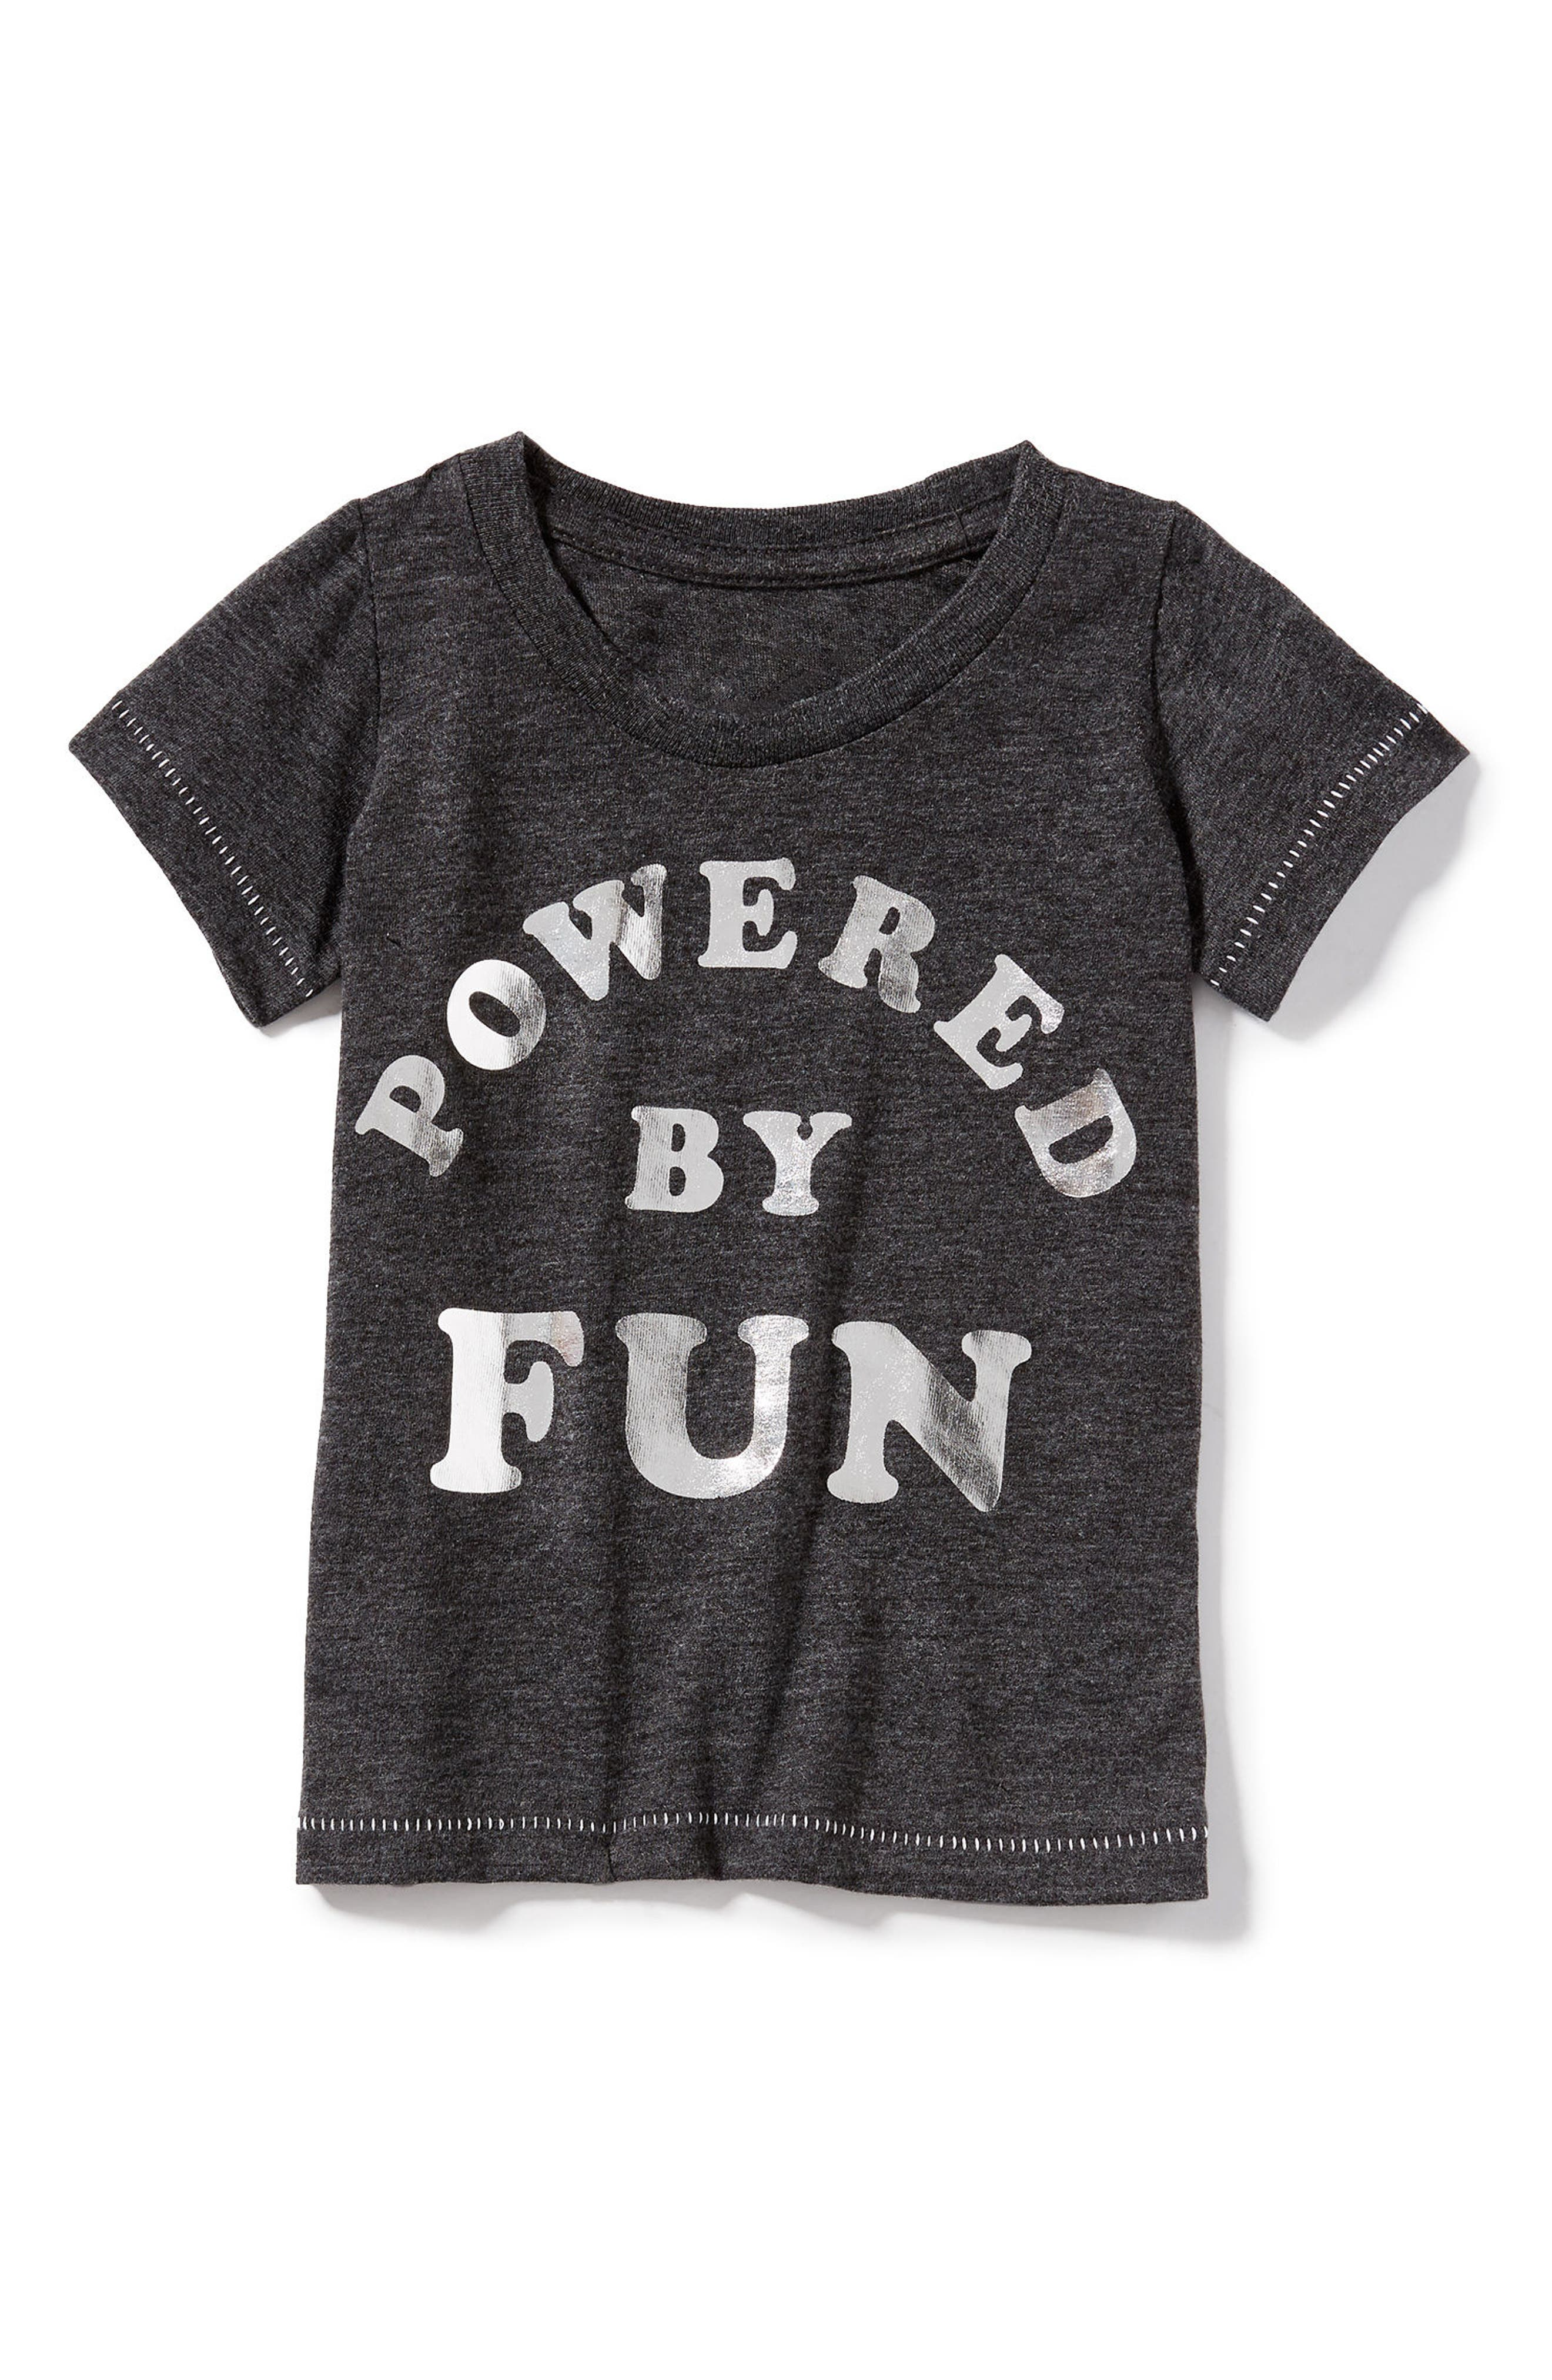 Powered By Fun Graphic Tee,                             Alternate thumbnail 3, color,                             021